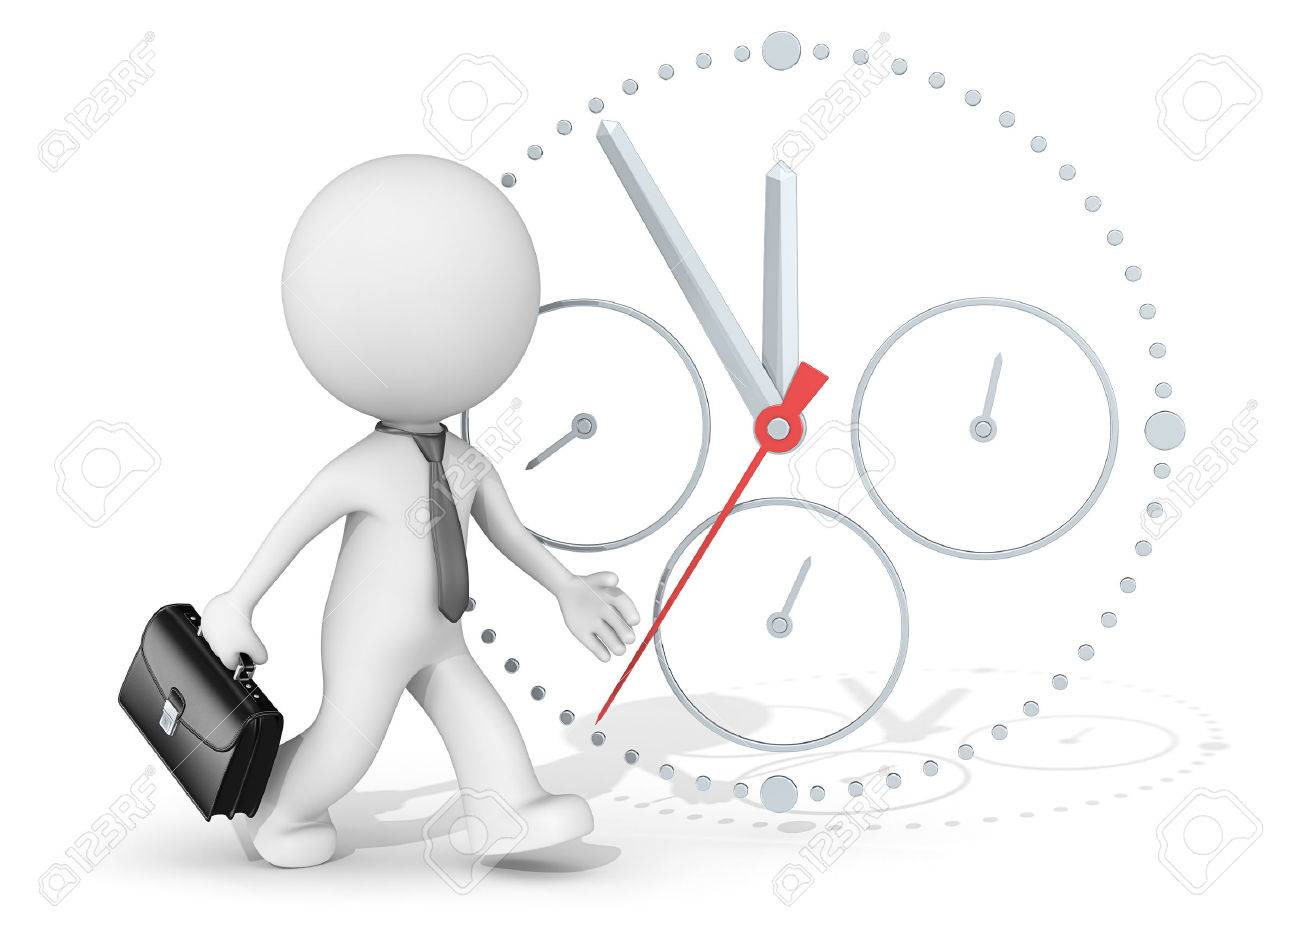 Deadline. The dude 3D character businessman rushing. Clock in background. Standard-Bild - 39033444